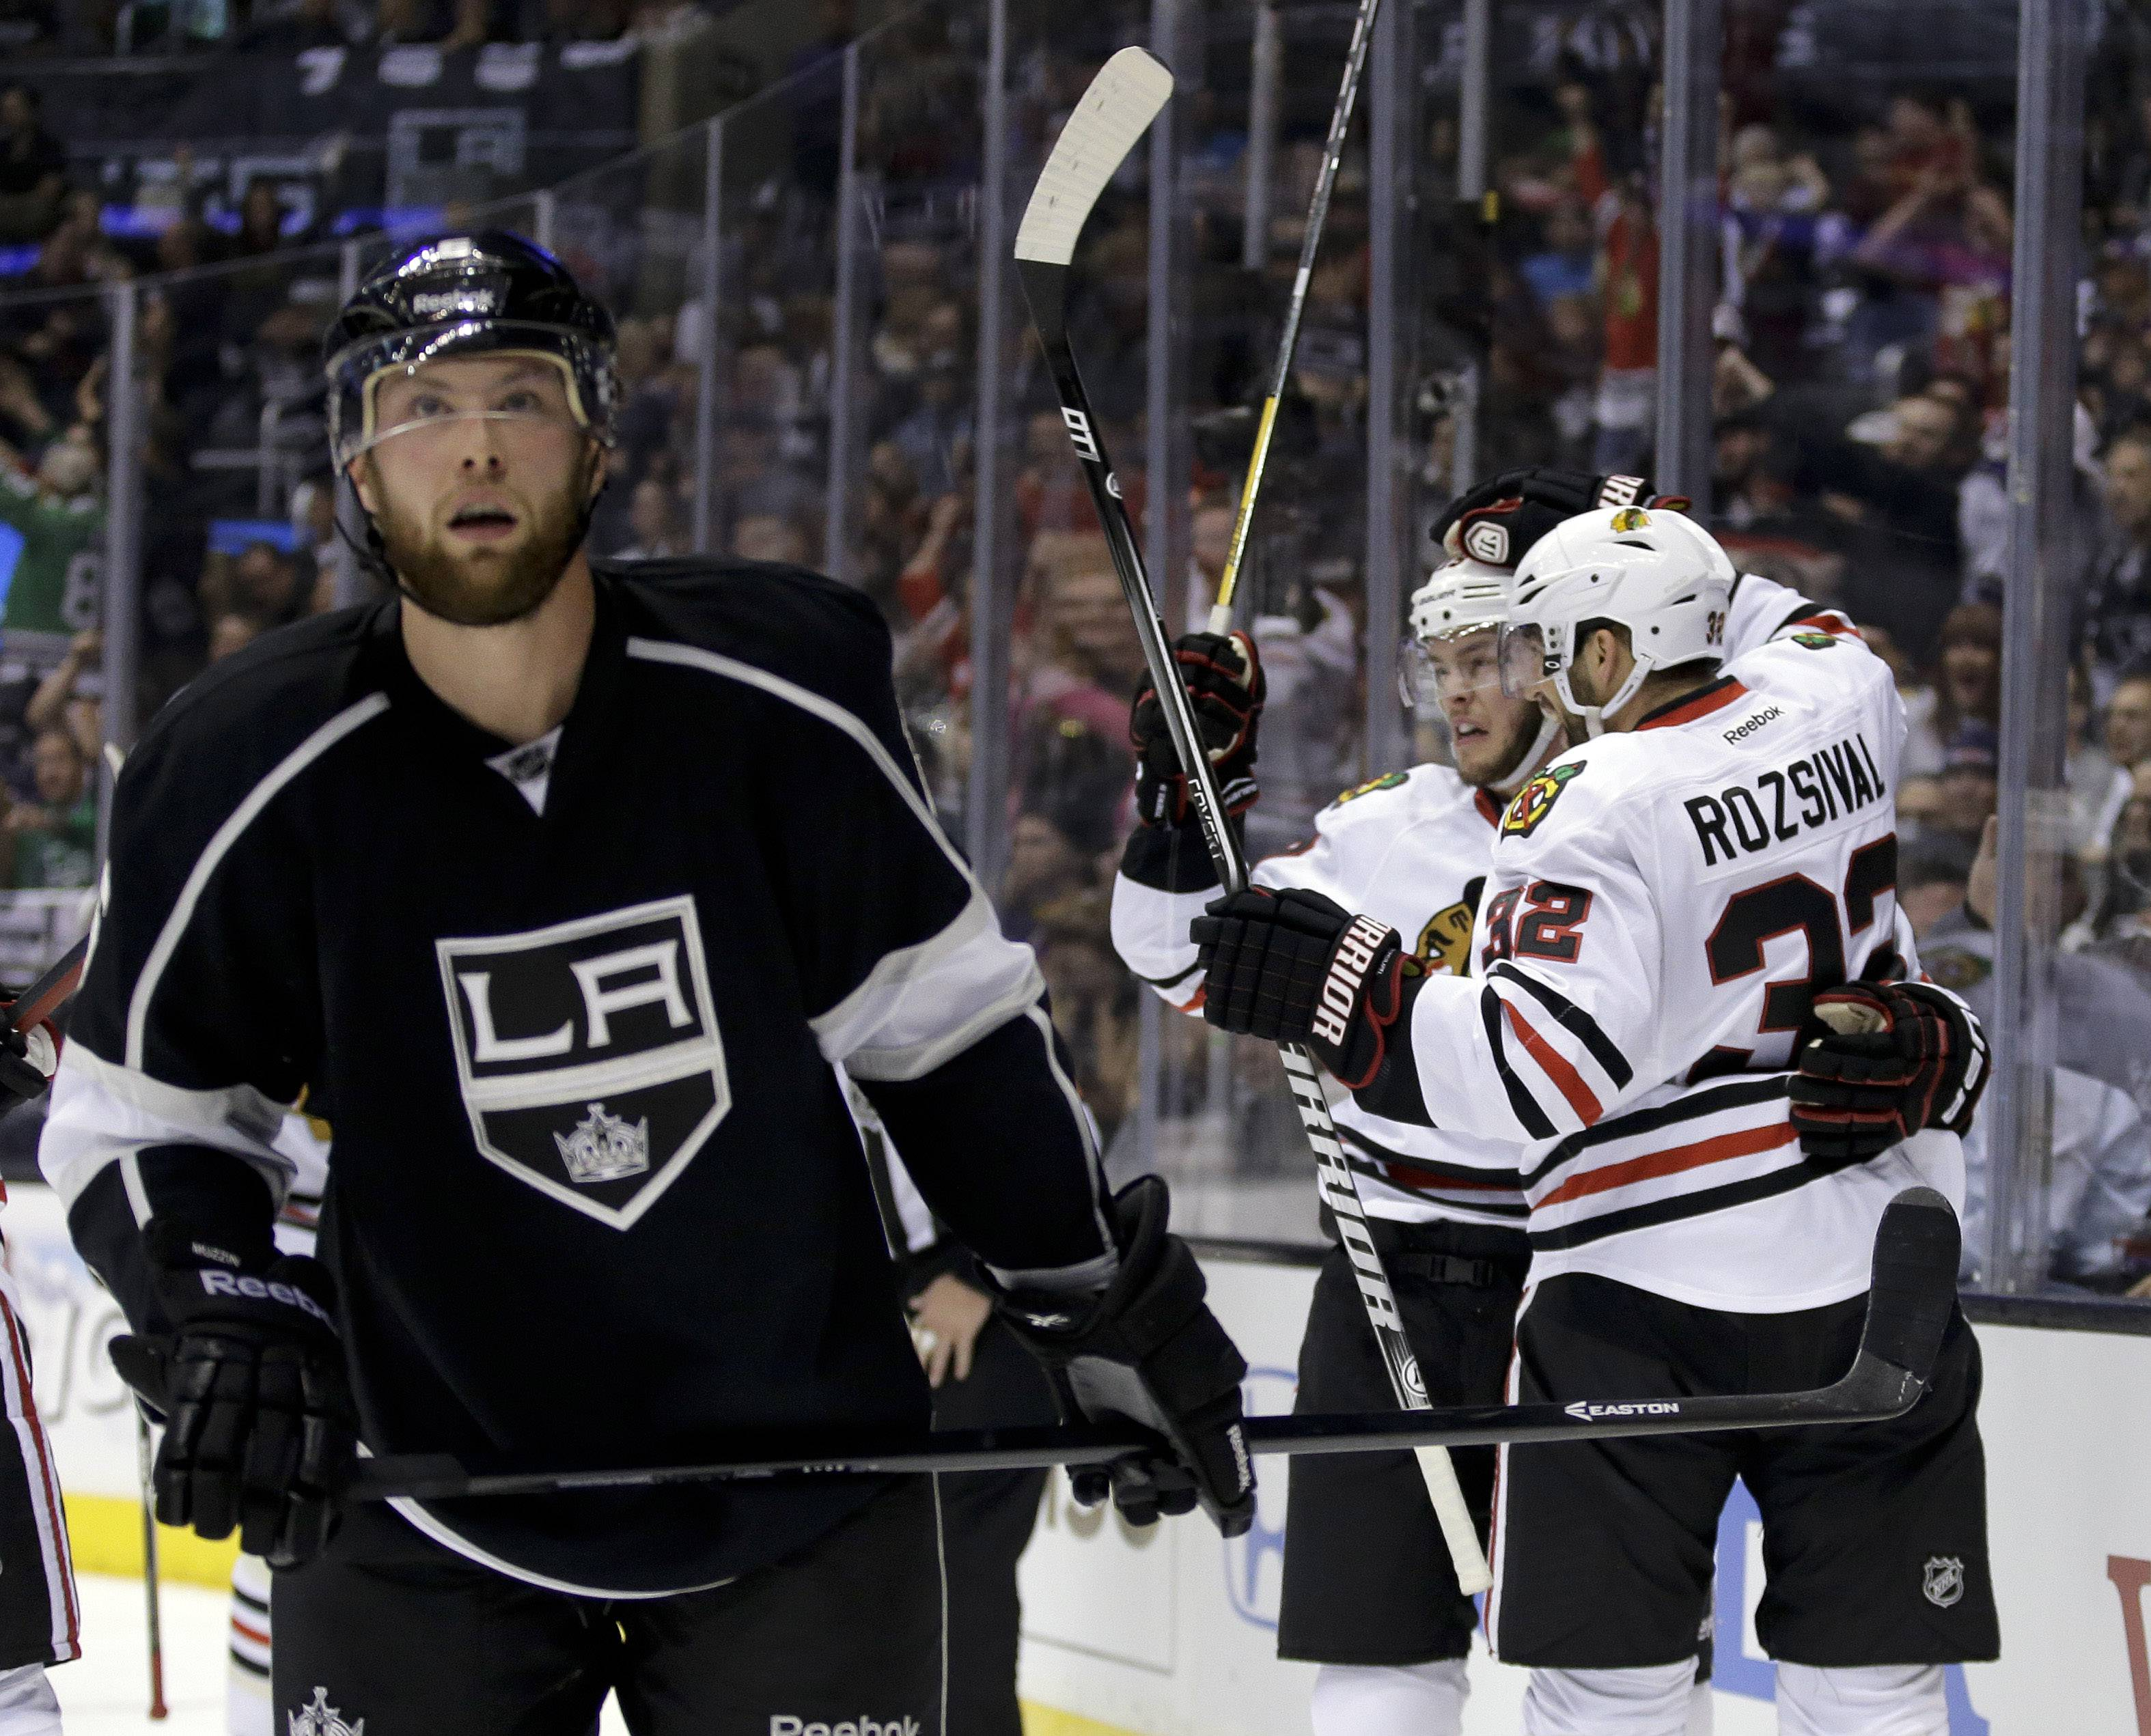 Chicago Blackhawks center Jonathan Toews, center, celebrates his goal with teammate Michal Rozsival, right, as Los Angeles Kings defenseman Jake Muzzin skates off during the first period of Game 3 of the Western Conference finals of the NHL hockey Stanley Cup playoffs in Los Angeles, Saturday, May 24, 2014.